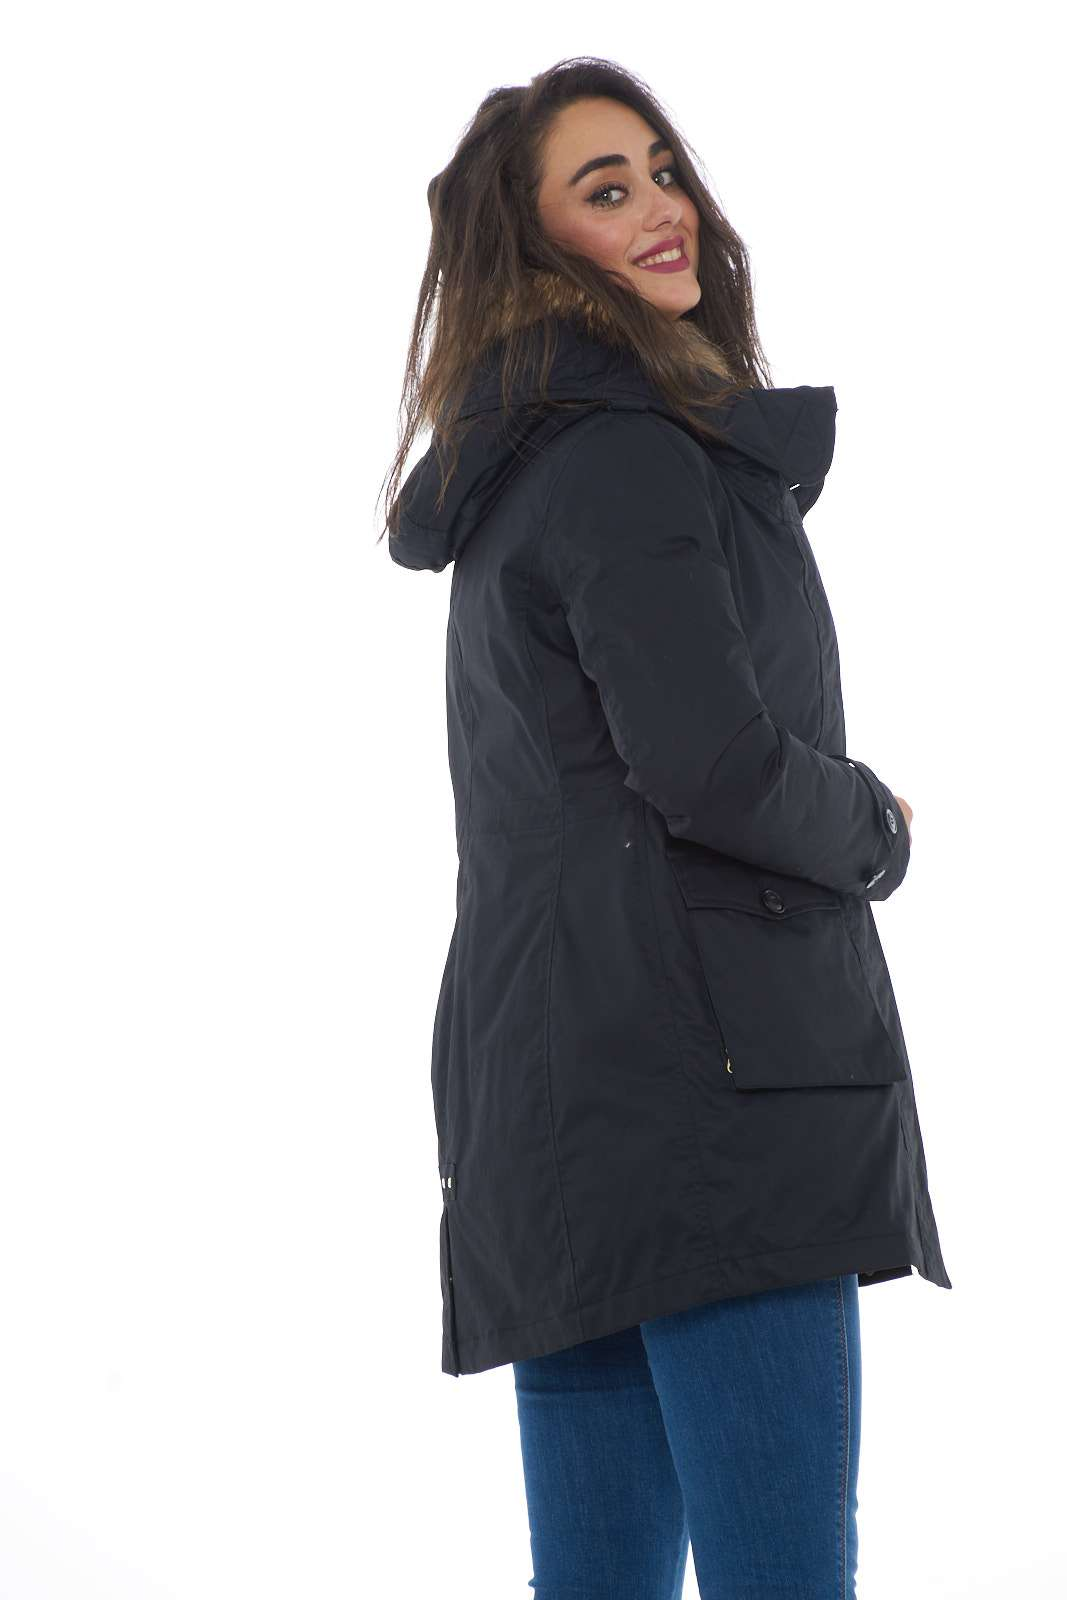 https://www.parmax.com/media/catalog/product/a/i/ai-outlet_parmax-cappotto-donna-woolrich-wwcps2685-c.jpg